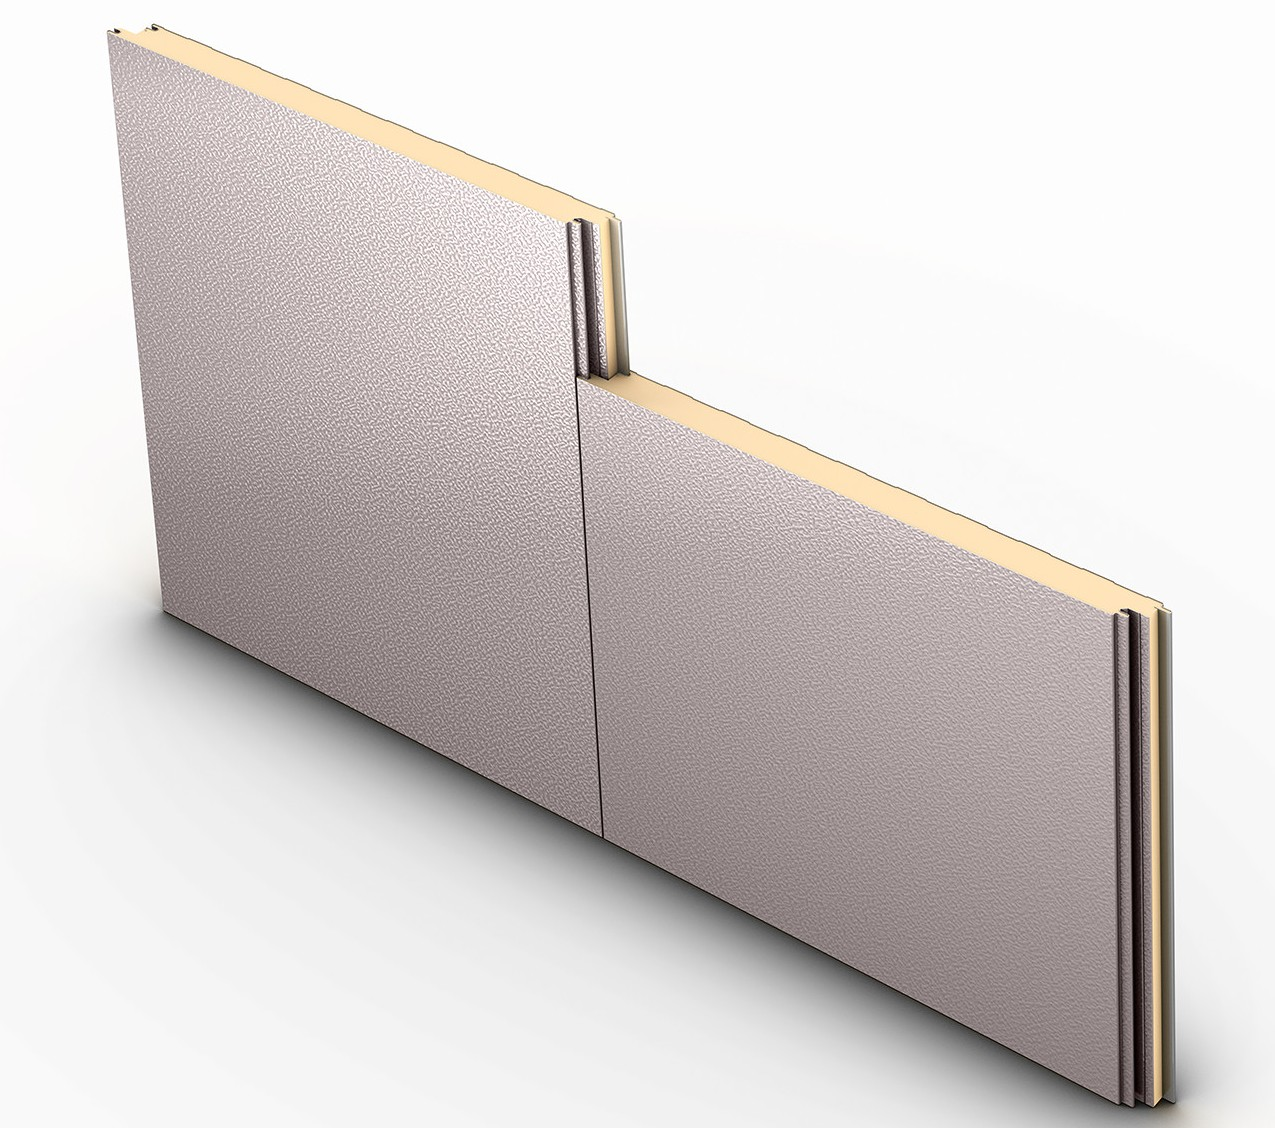 Impression insulated wall panel